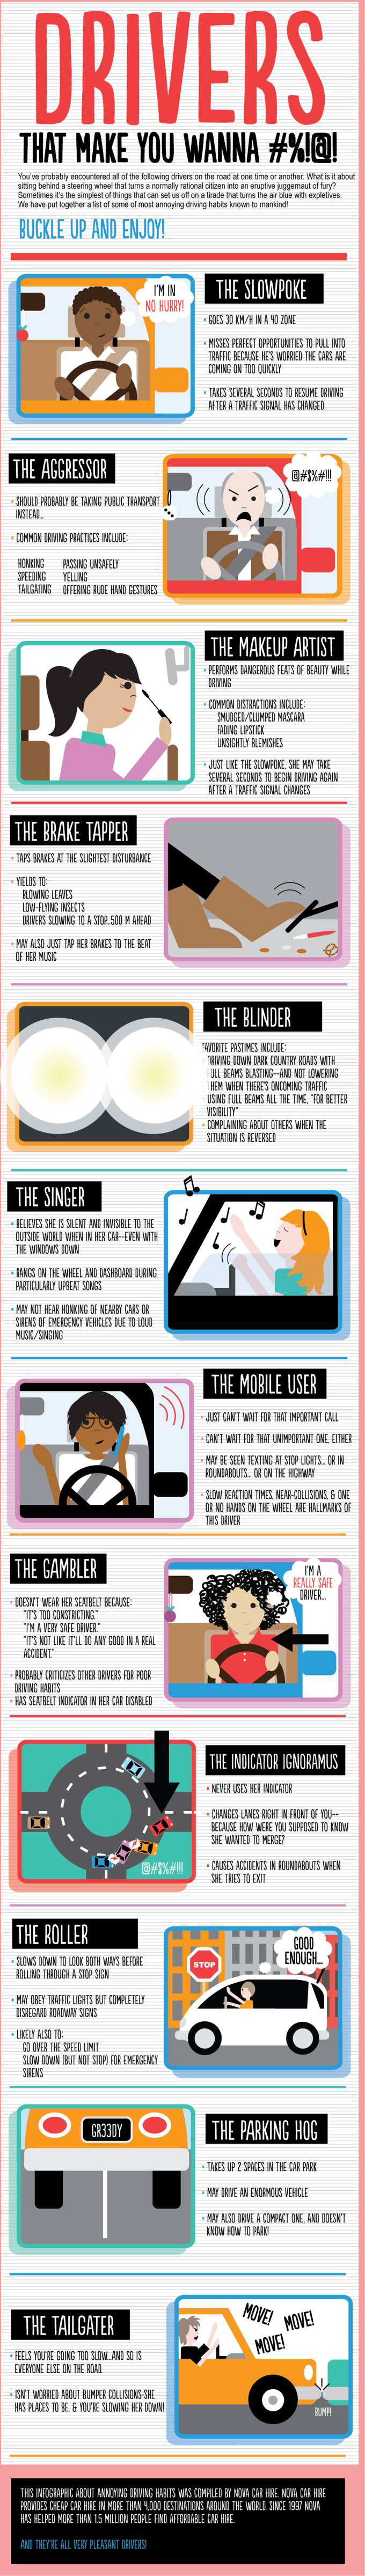 Annoying Driving Habits: Drivers That Make You Want To #%!@!